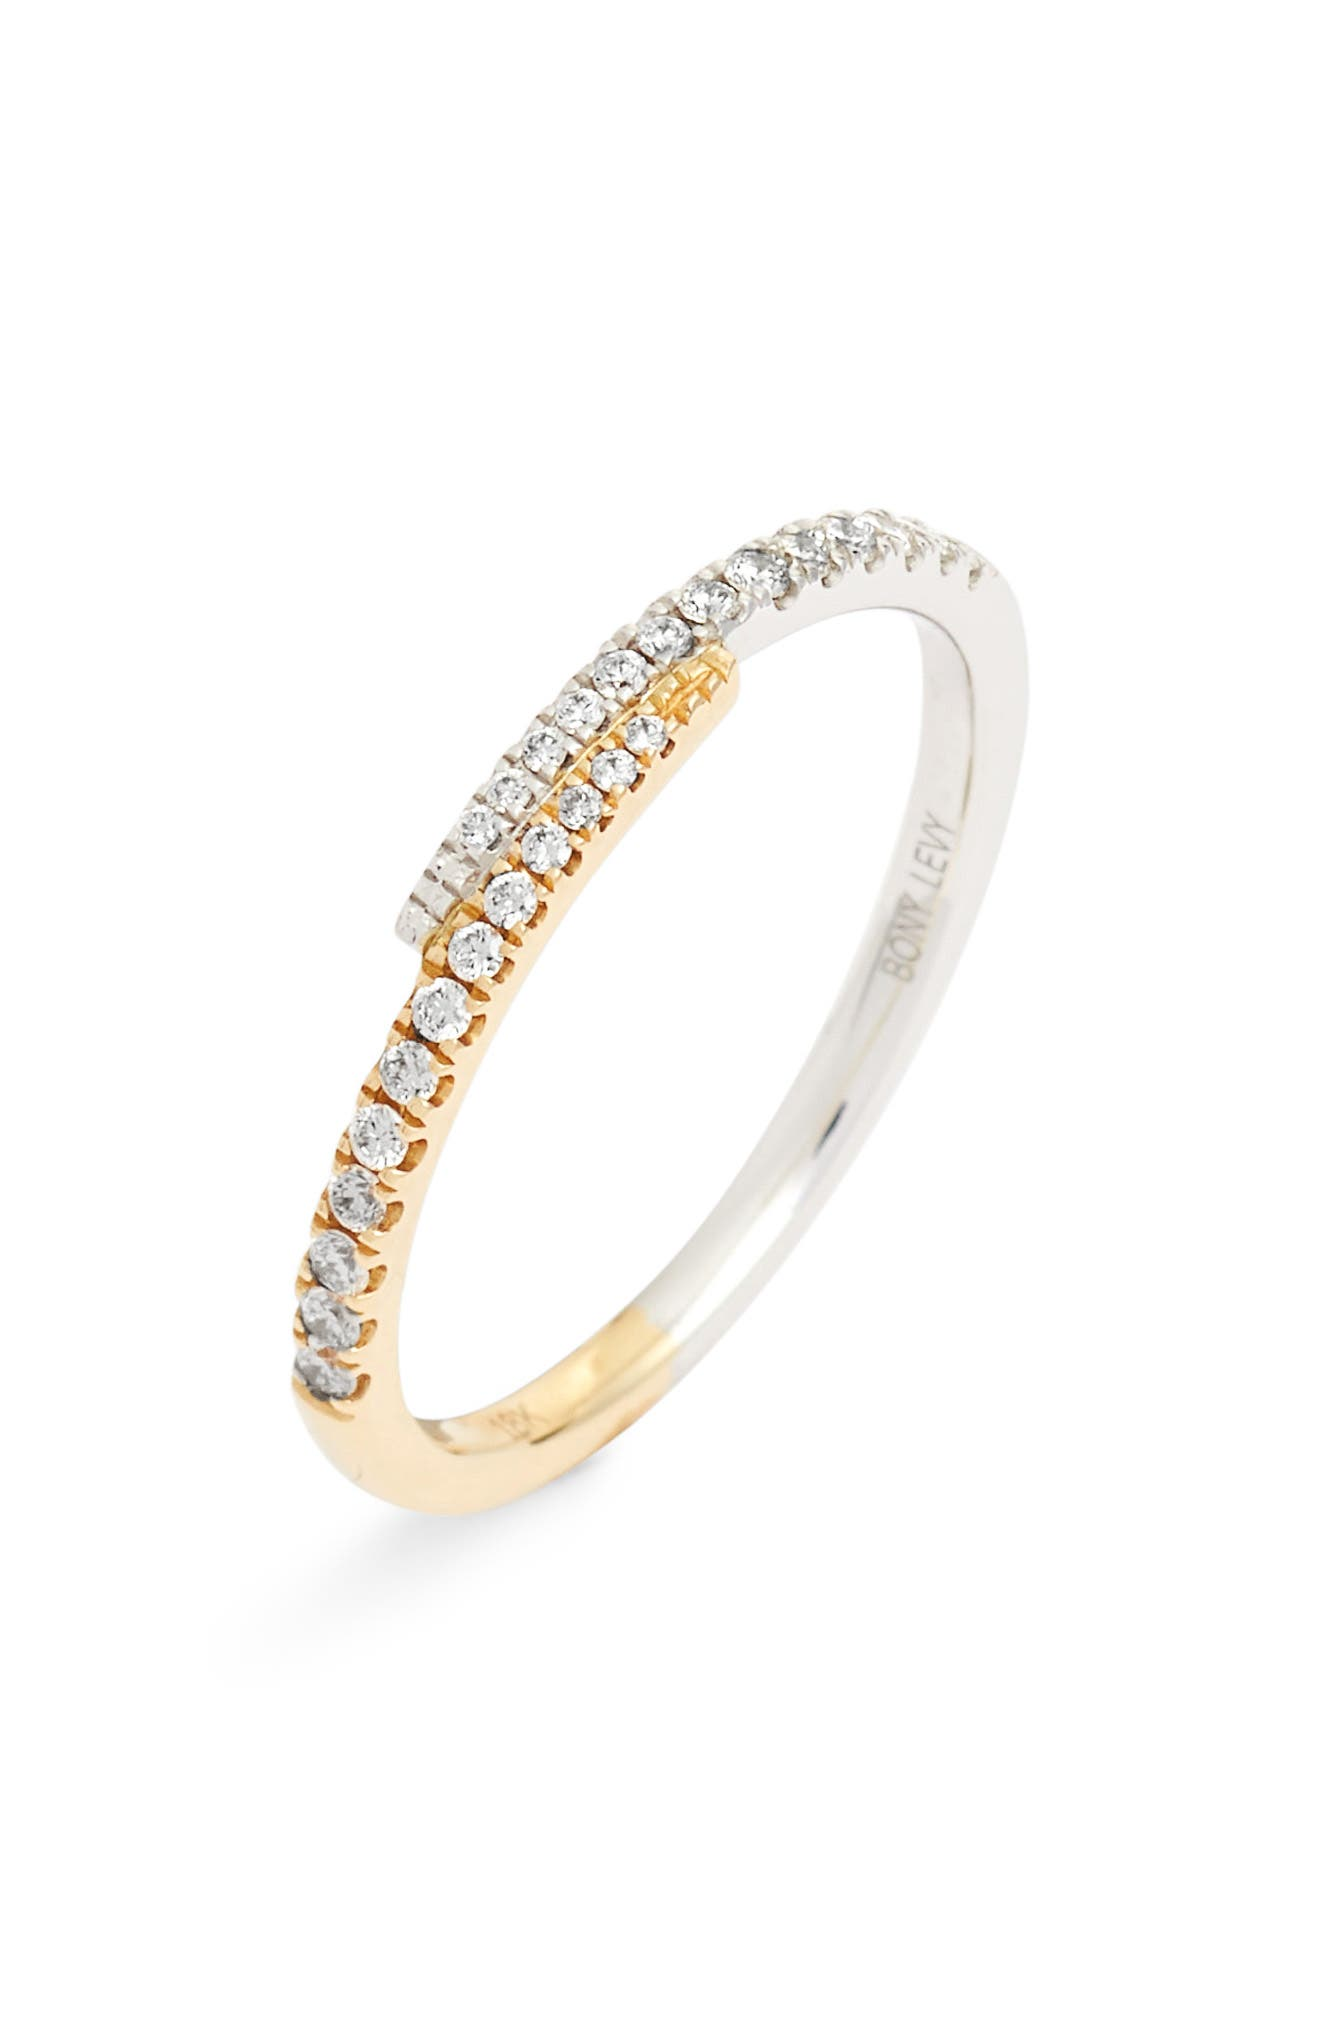 Diamond Overlap Stacking Ring,                             Main thumbnail 1, color,                             YELLOW GOLD/ WHITE GOLD